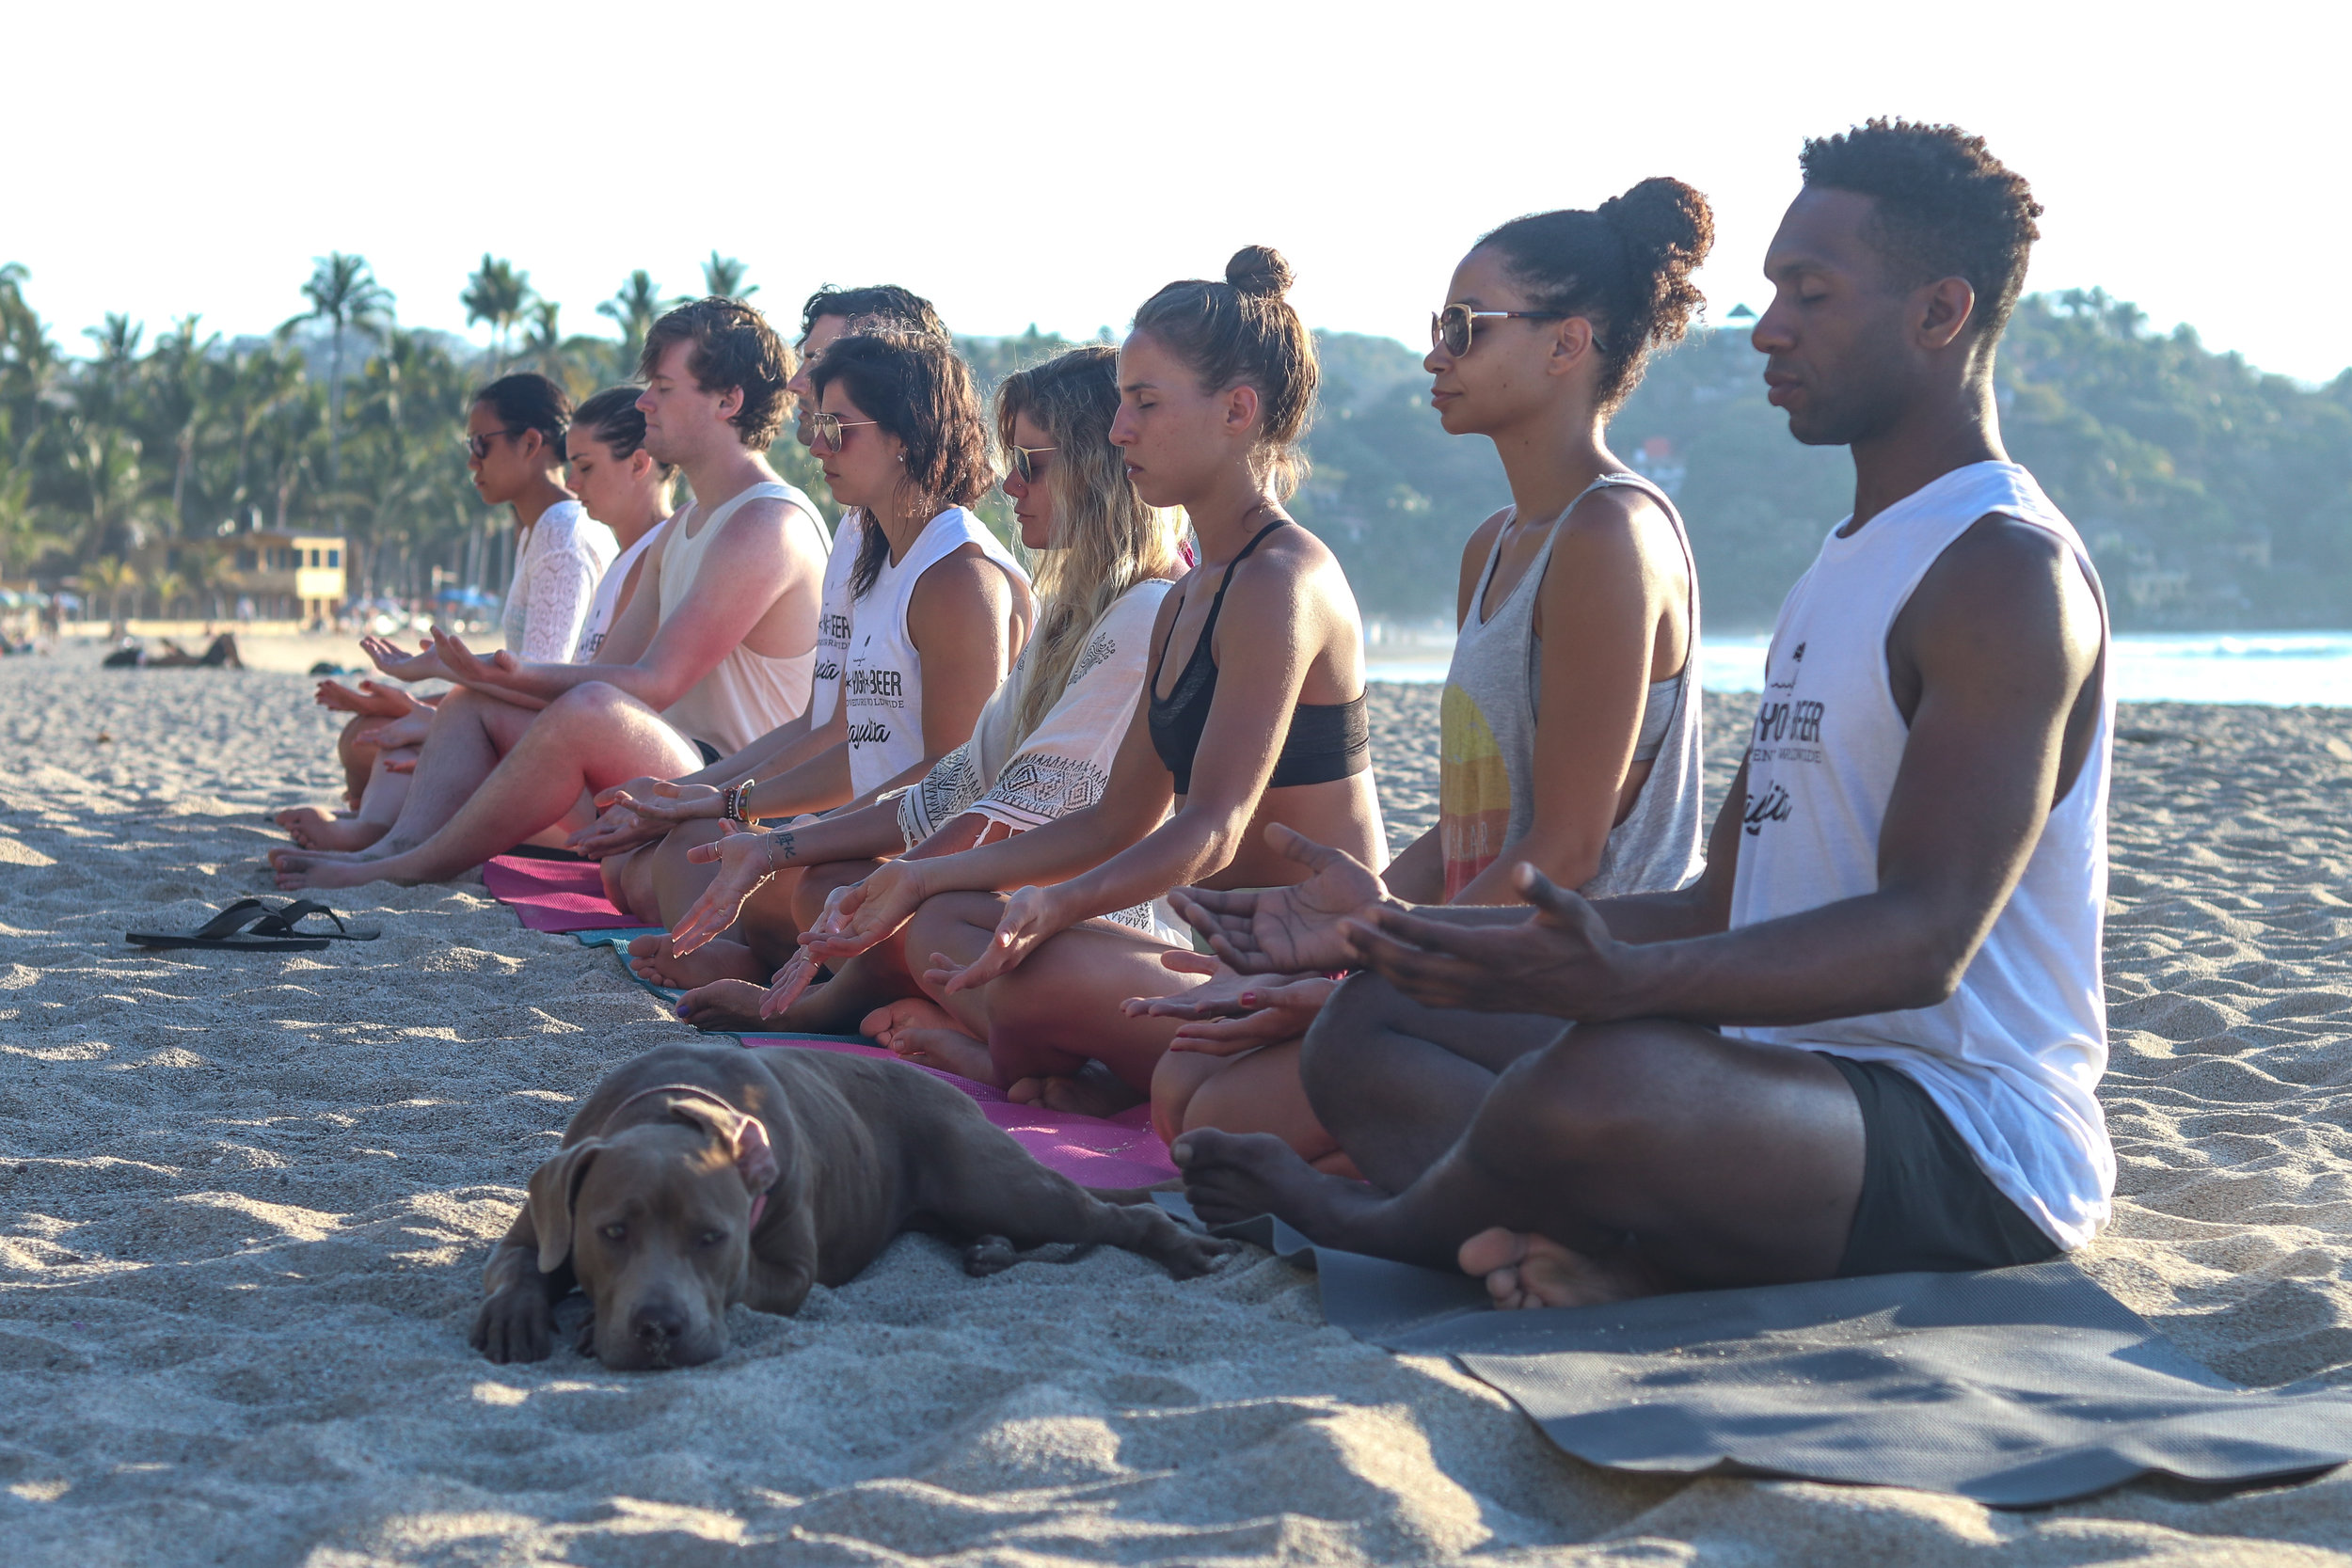 Meditation on the beach with our friend Buddha the pup!